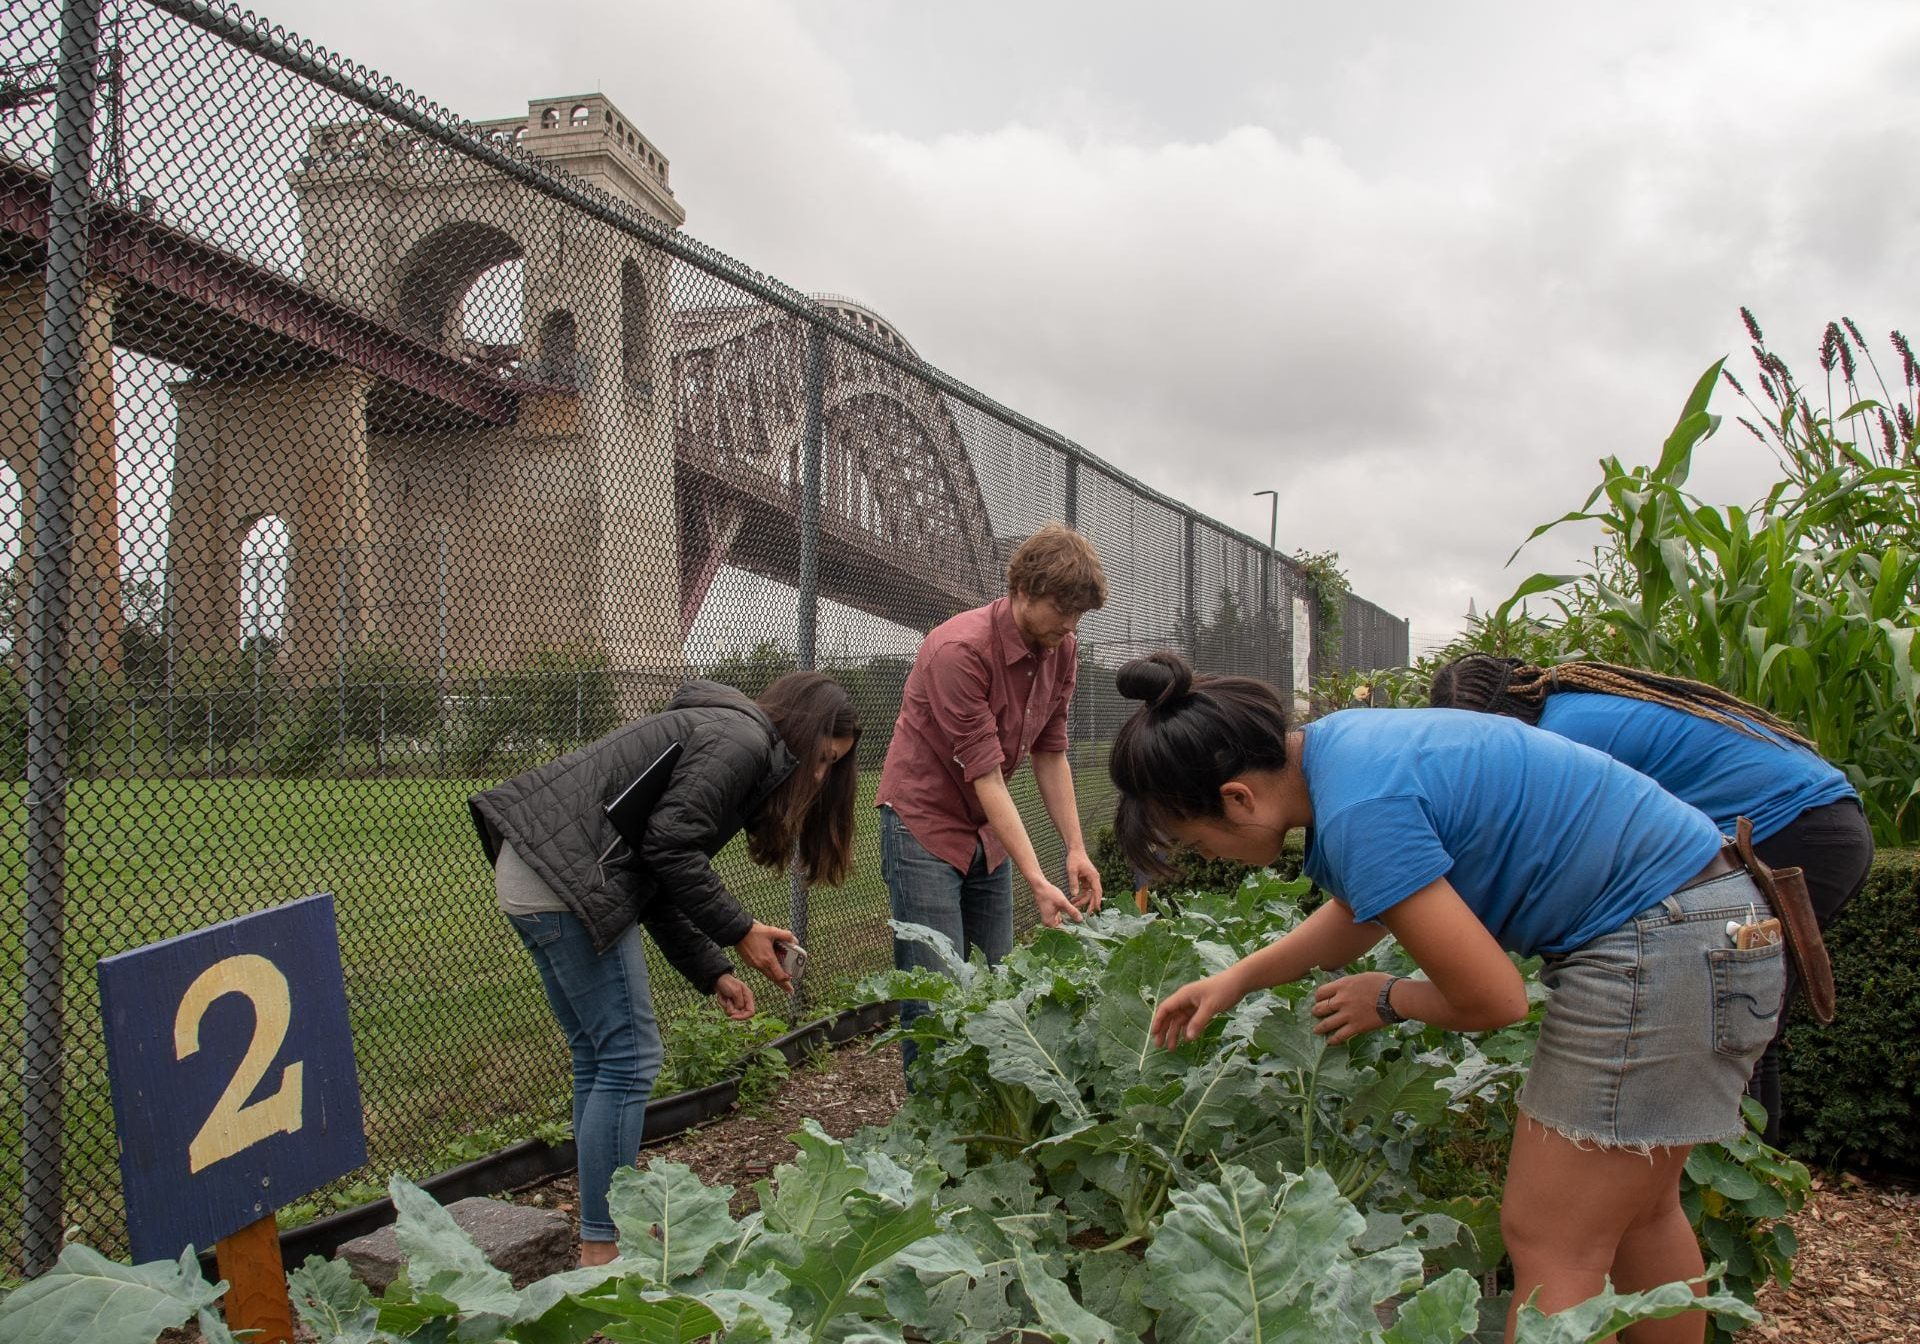 In the shadow of New York City's Hell Gate Bridge, Cornell Cooperative Extension urban agriculture specialists Yolanda Gonzalez, left, and Sam Anderson, center scout for harlequin bugs and consult with farmers at Randall's Island Urban Farm in New York City. R.J. Anderson / Cornell Cooperative Extension